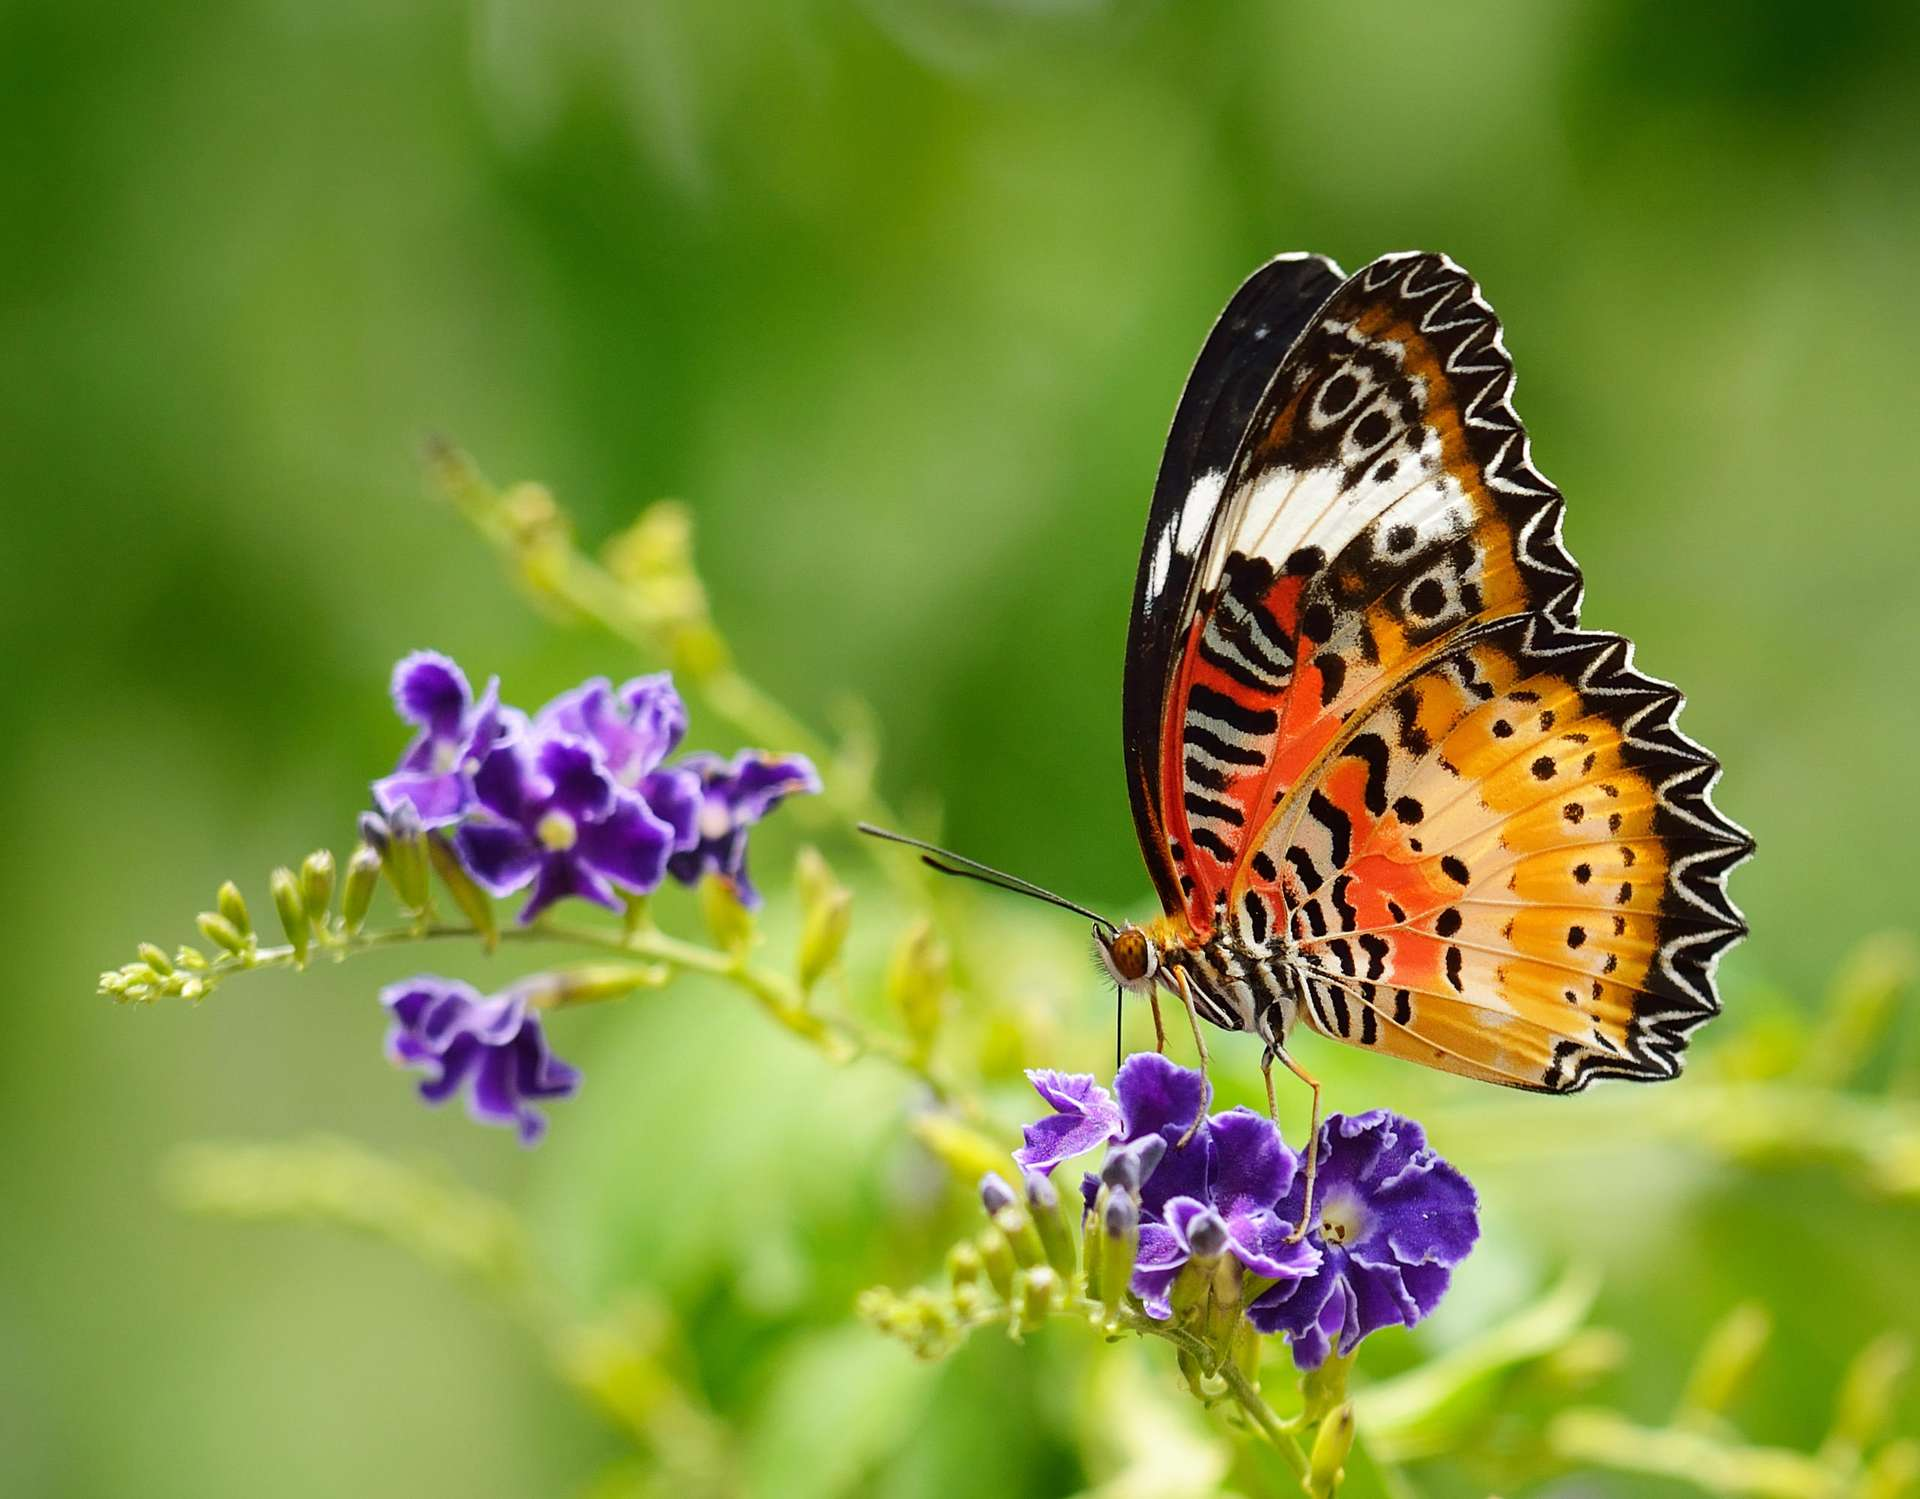 Beautiful Pictures Of Flowers And Butterflies Birds Scorpio April 2018 Monthly Horoscope Astrosofa